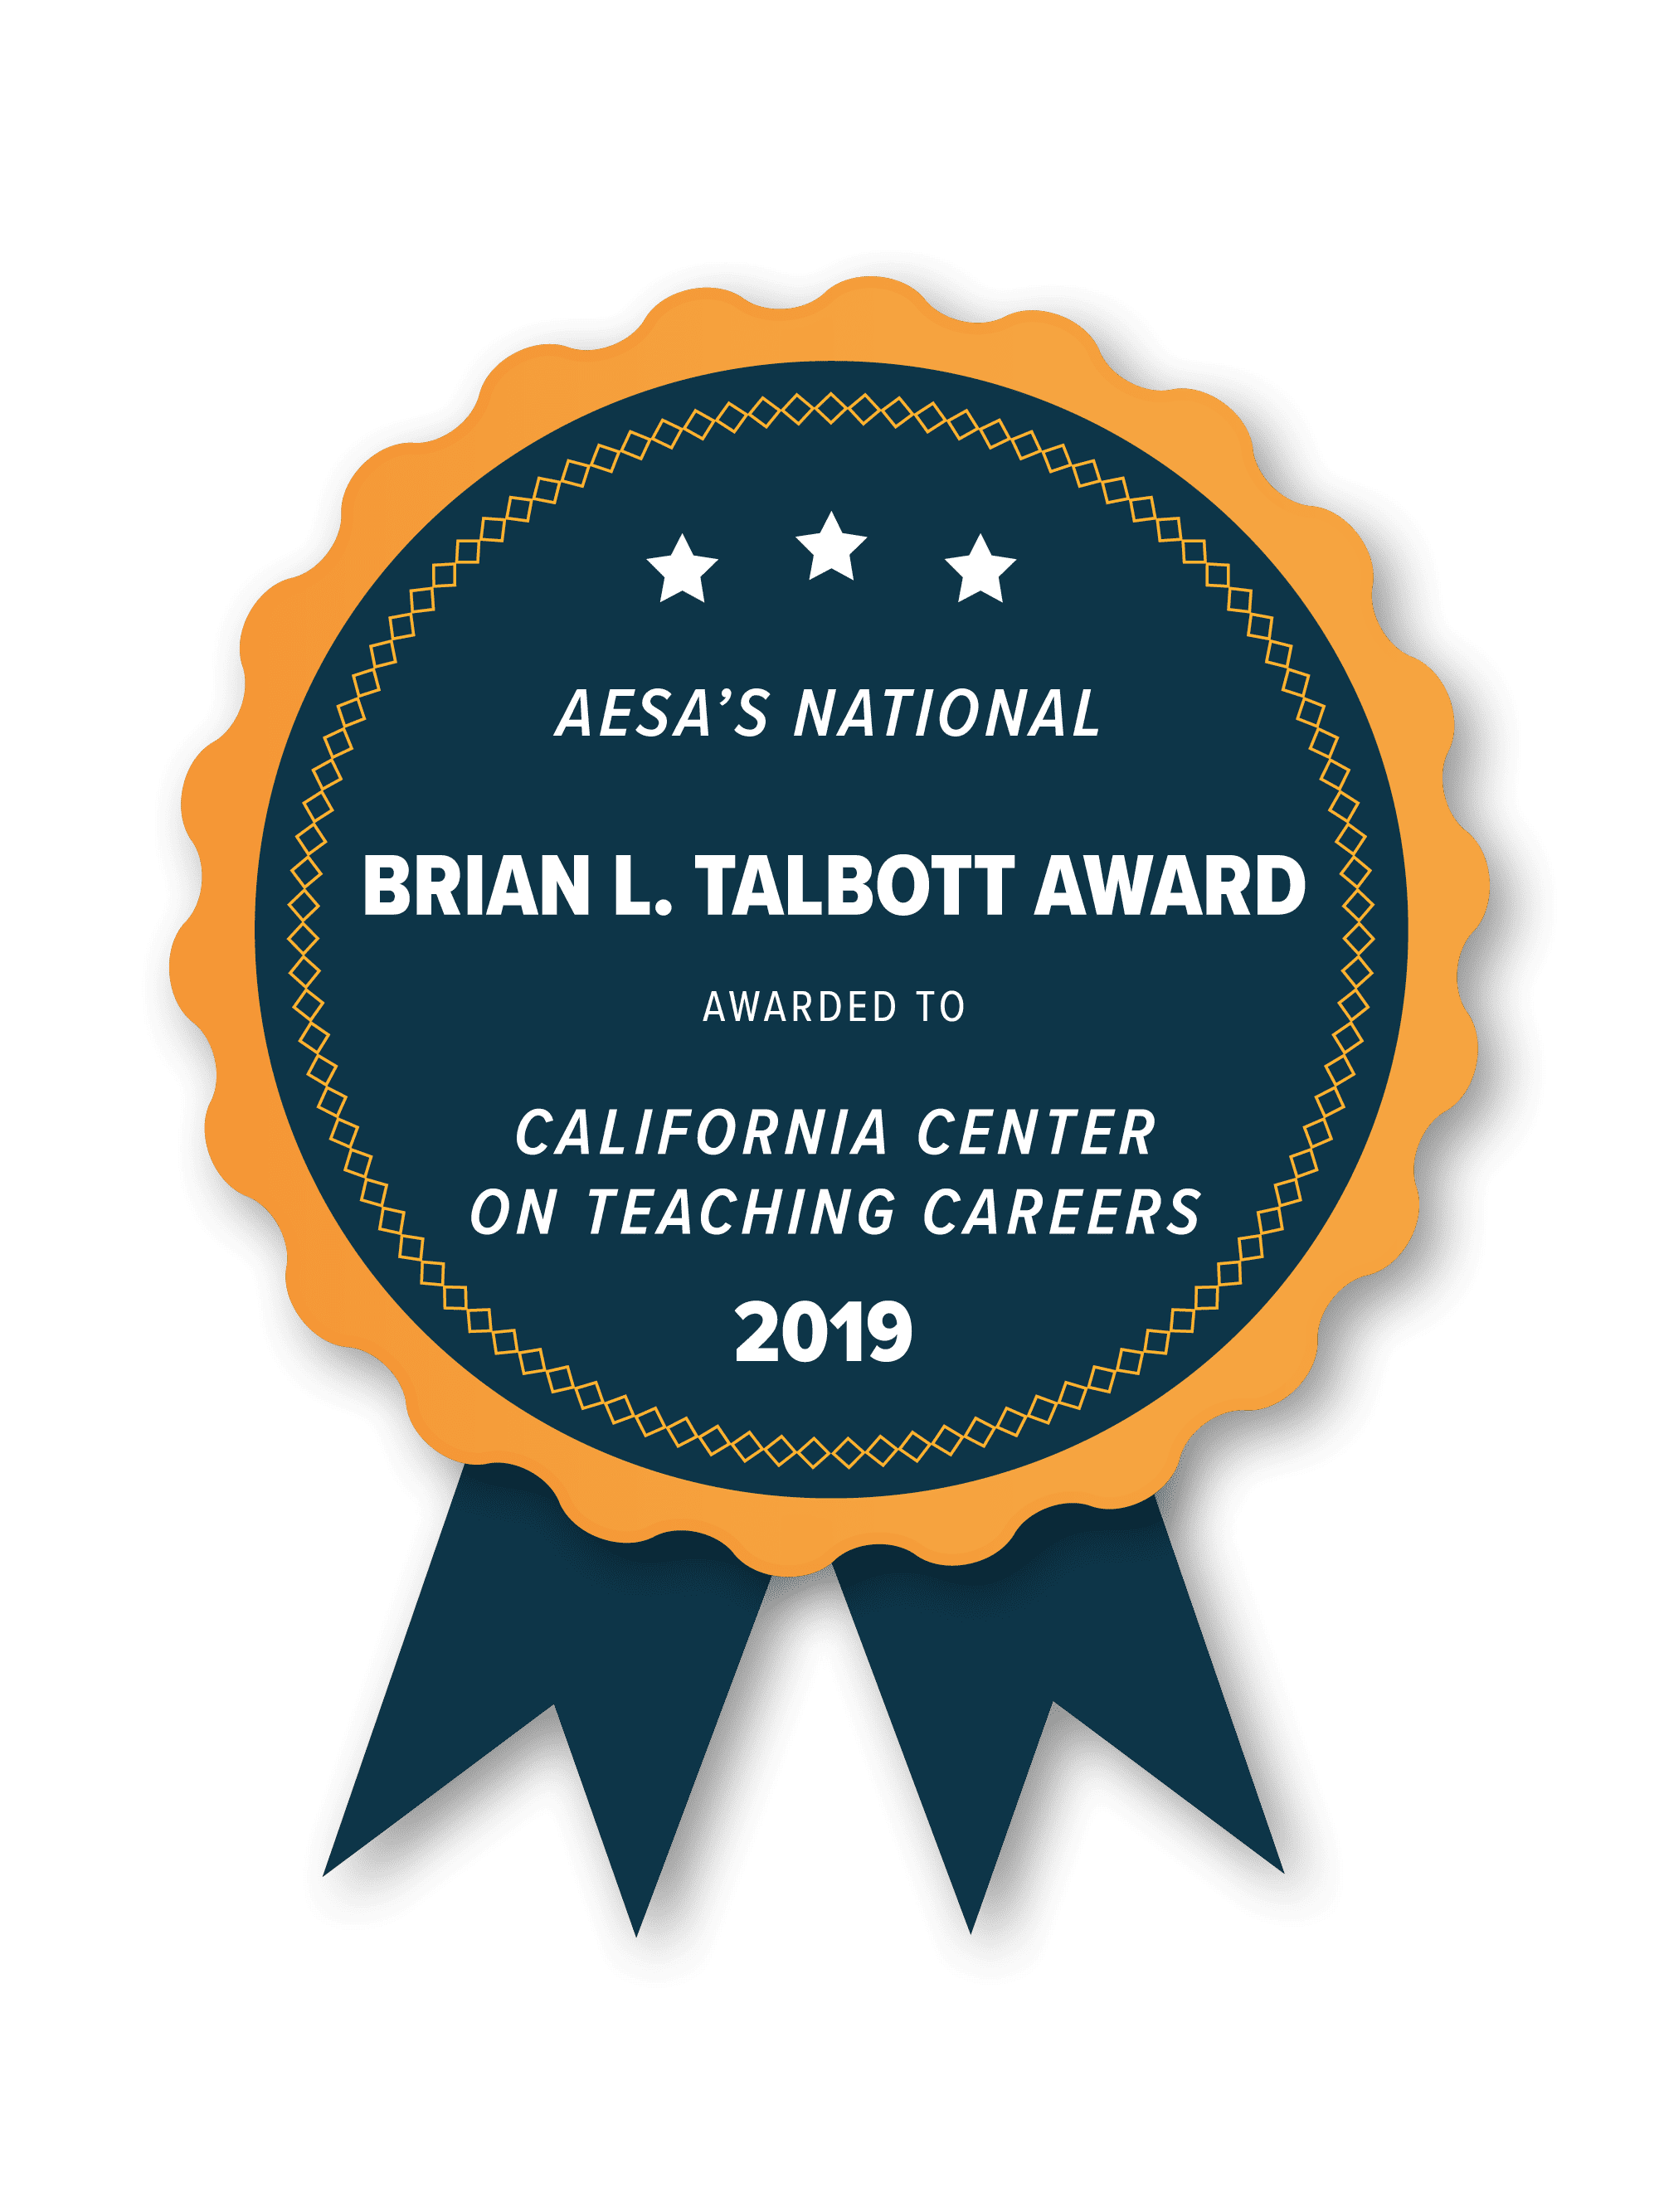 Brian L. Talbott Award from the Association of Educational Service Agencies